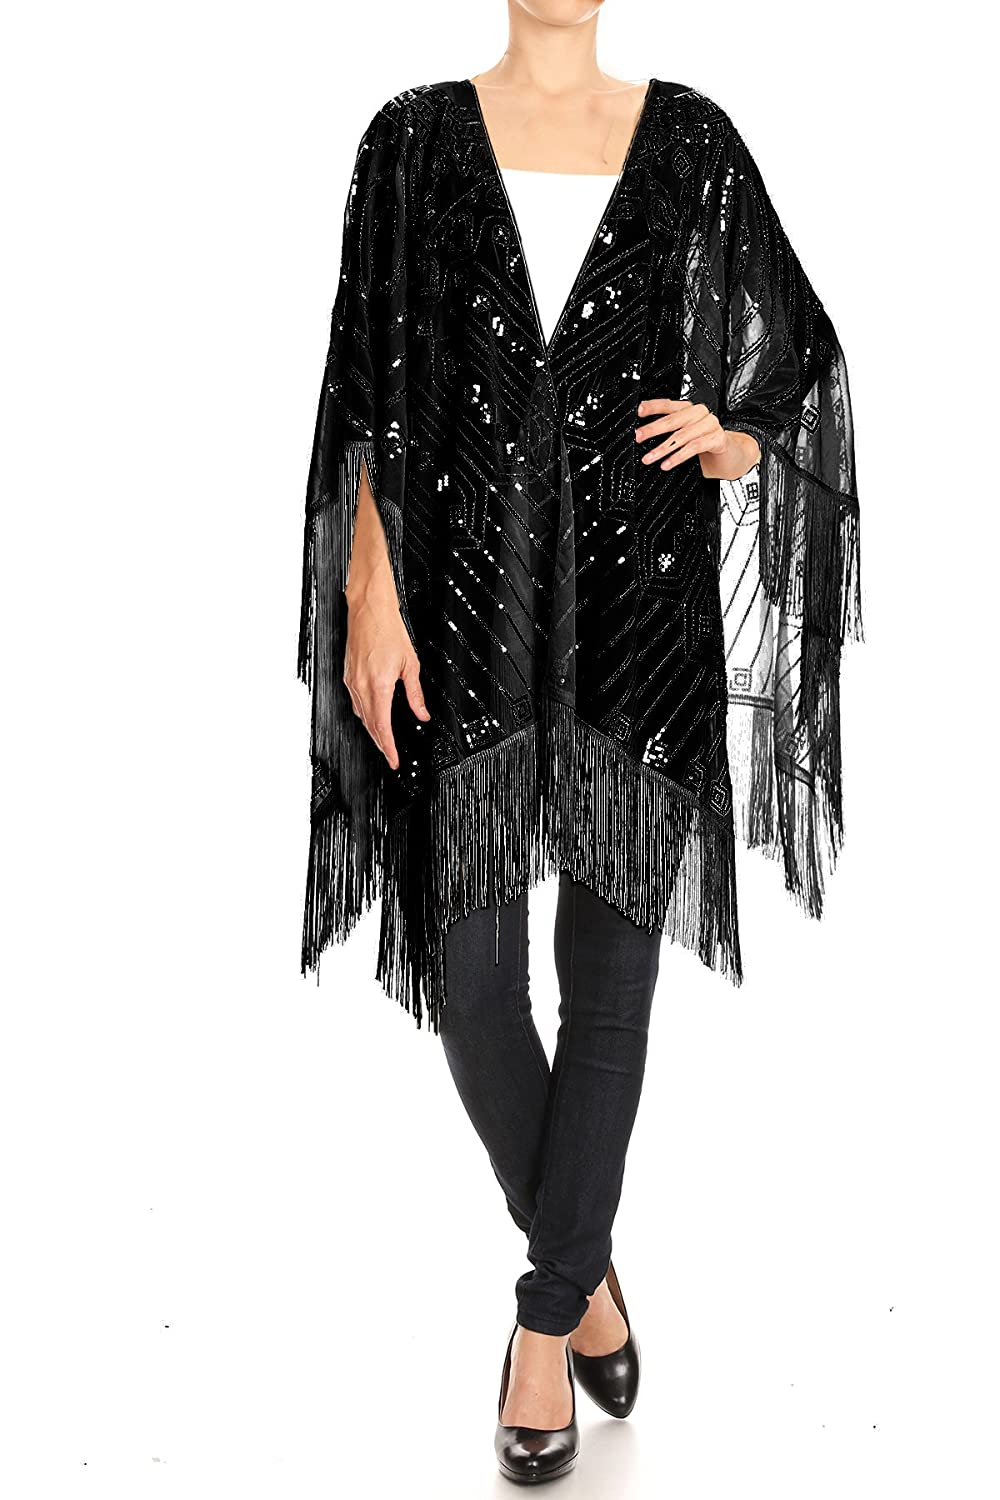 1900-1910s Clothing Anna-Kaci Womens Oversized Hand Beaded and Sequin Evening Shawl Wrap with Fringe $26.90 AT vintagedancer.com